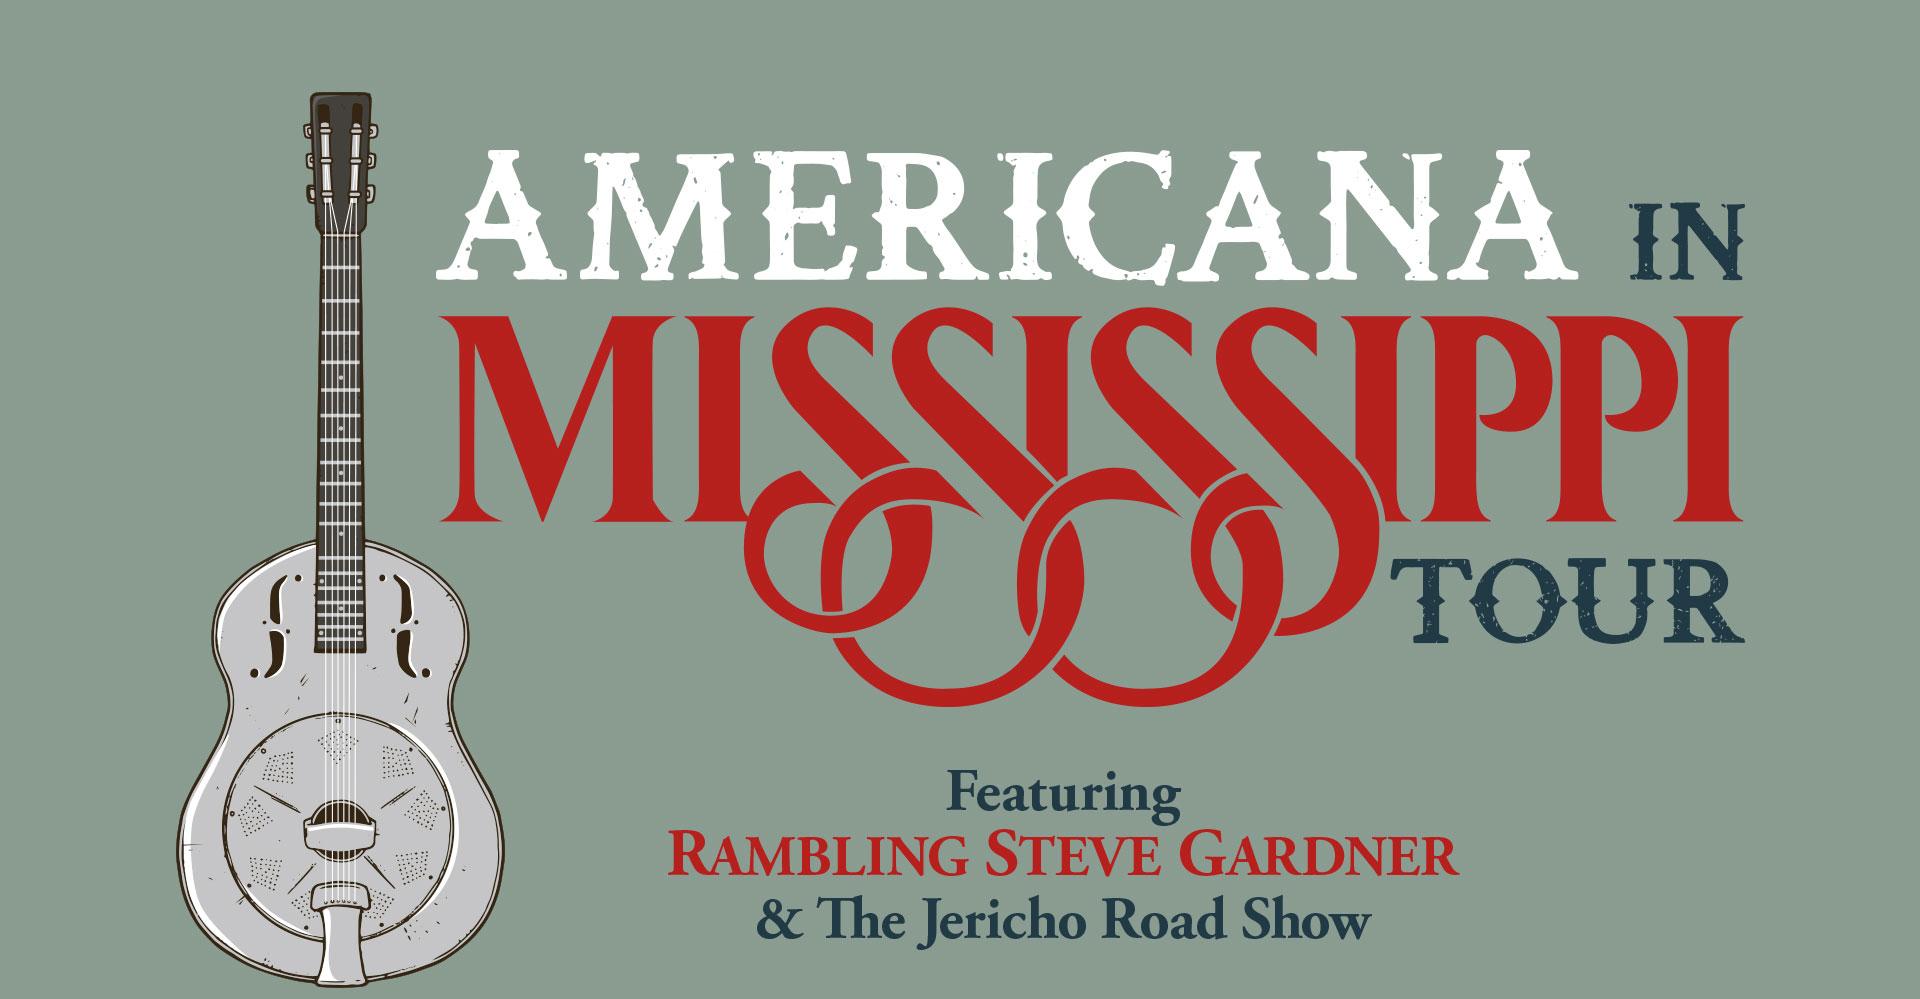 The City of Laurel, Americana in Mississippi Tour